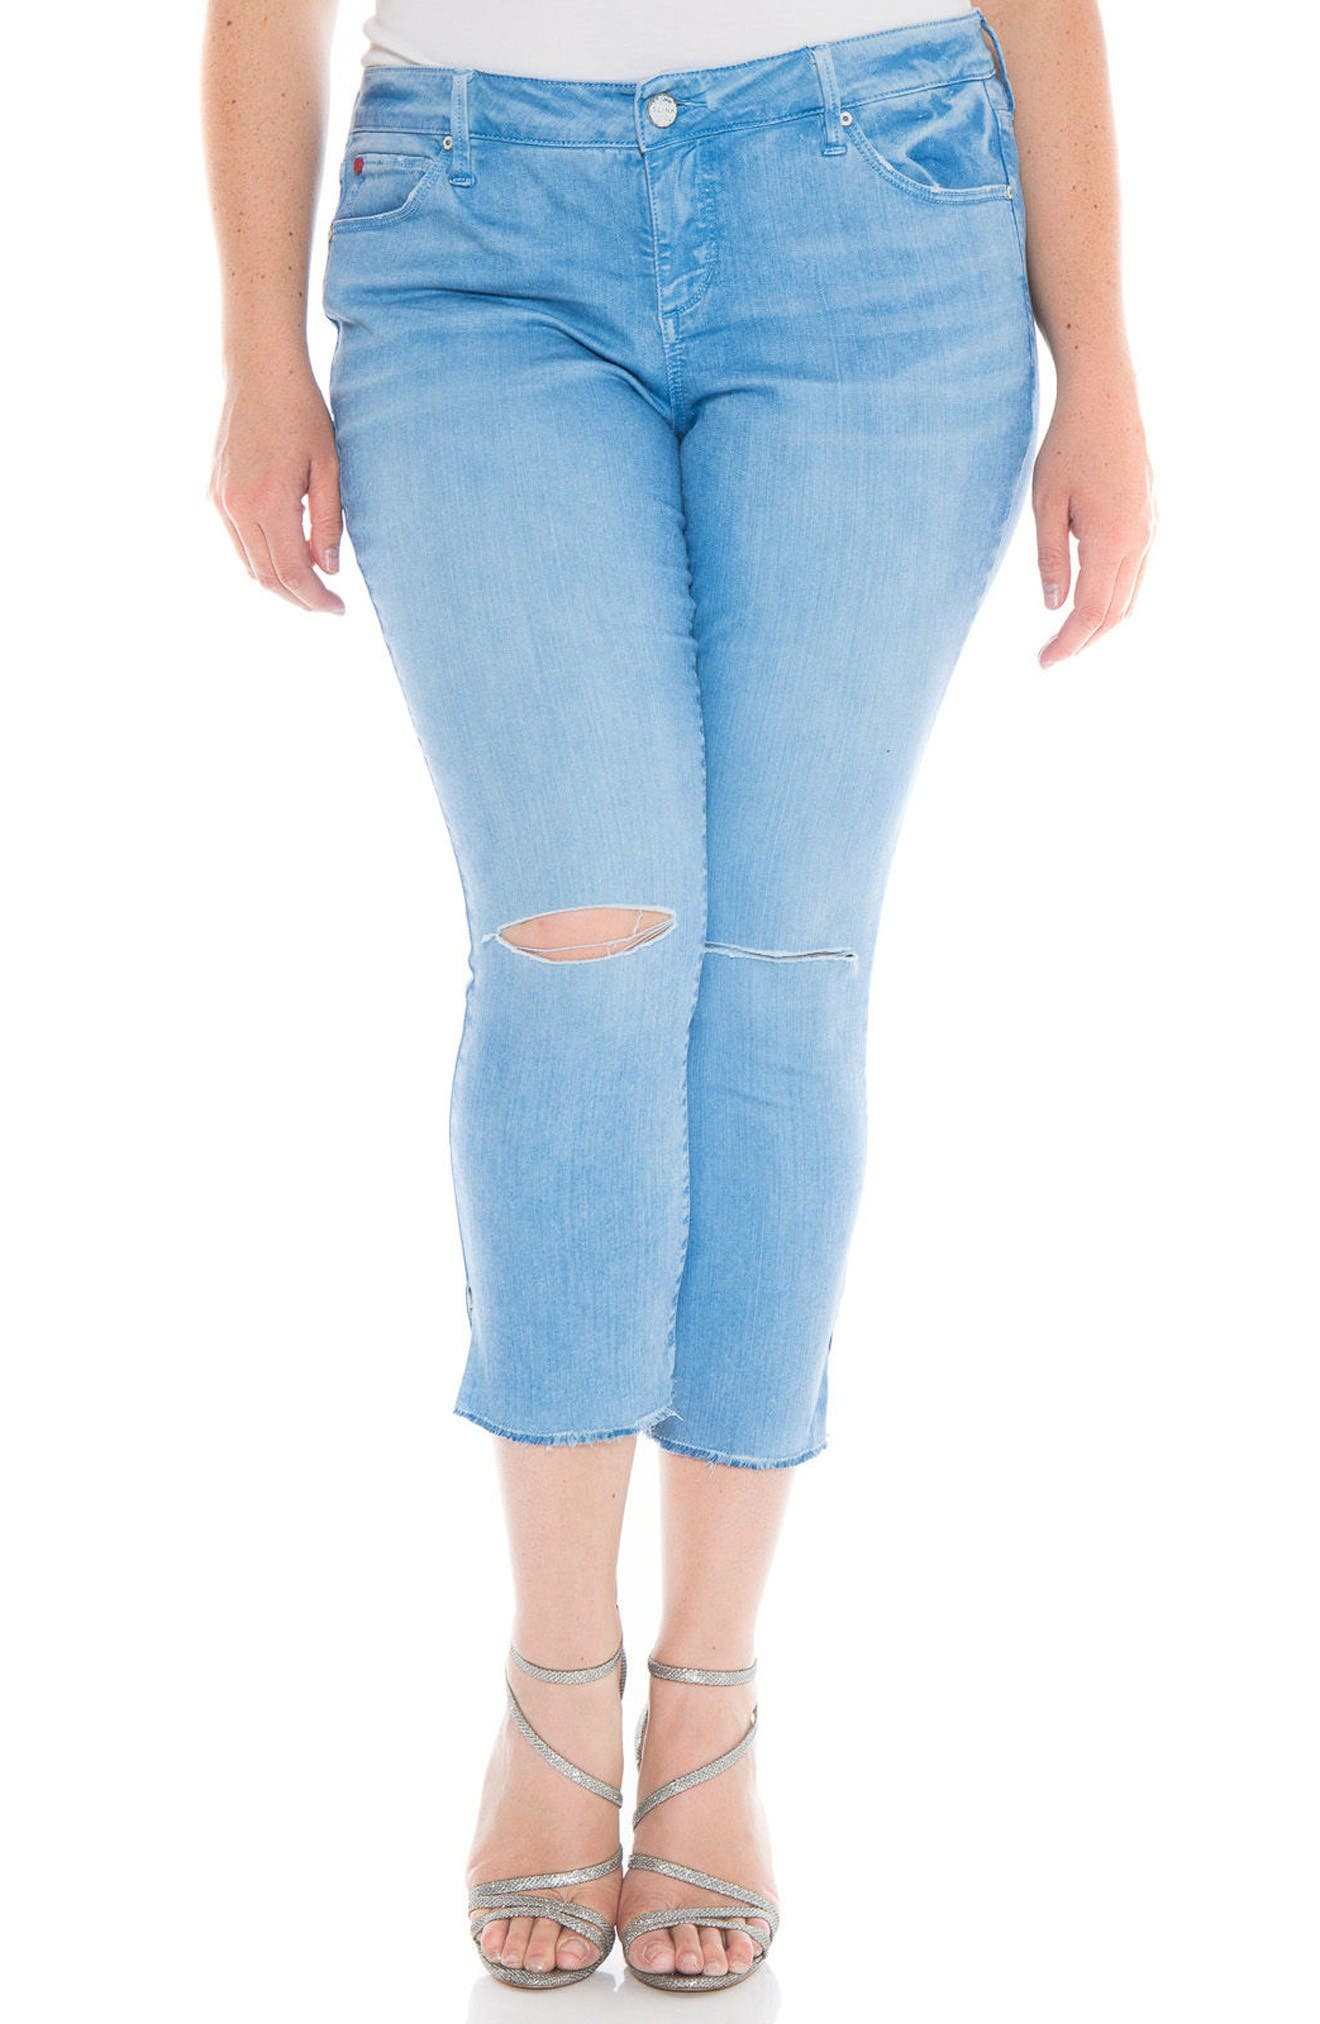 Alternate Image 1 Selected - SLINK Jeans Fray Hem Ripped Crop Skinny Jeans (Plus Size)